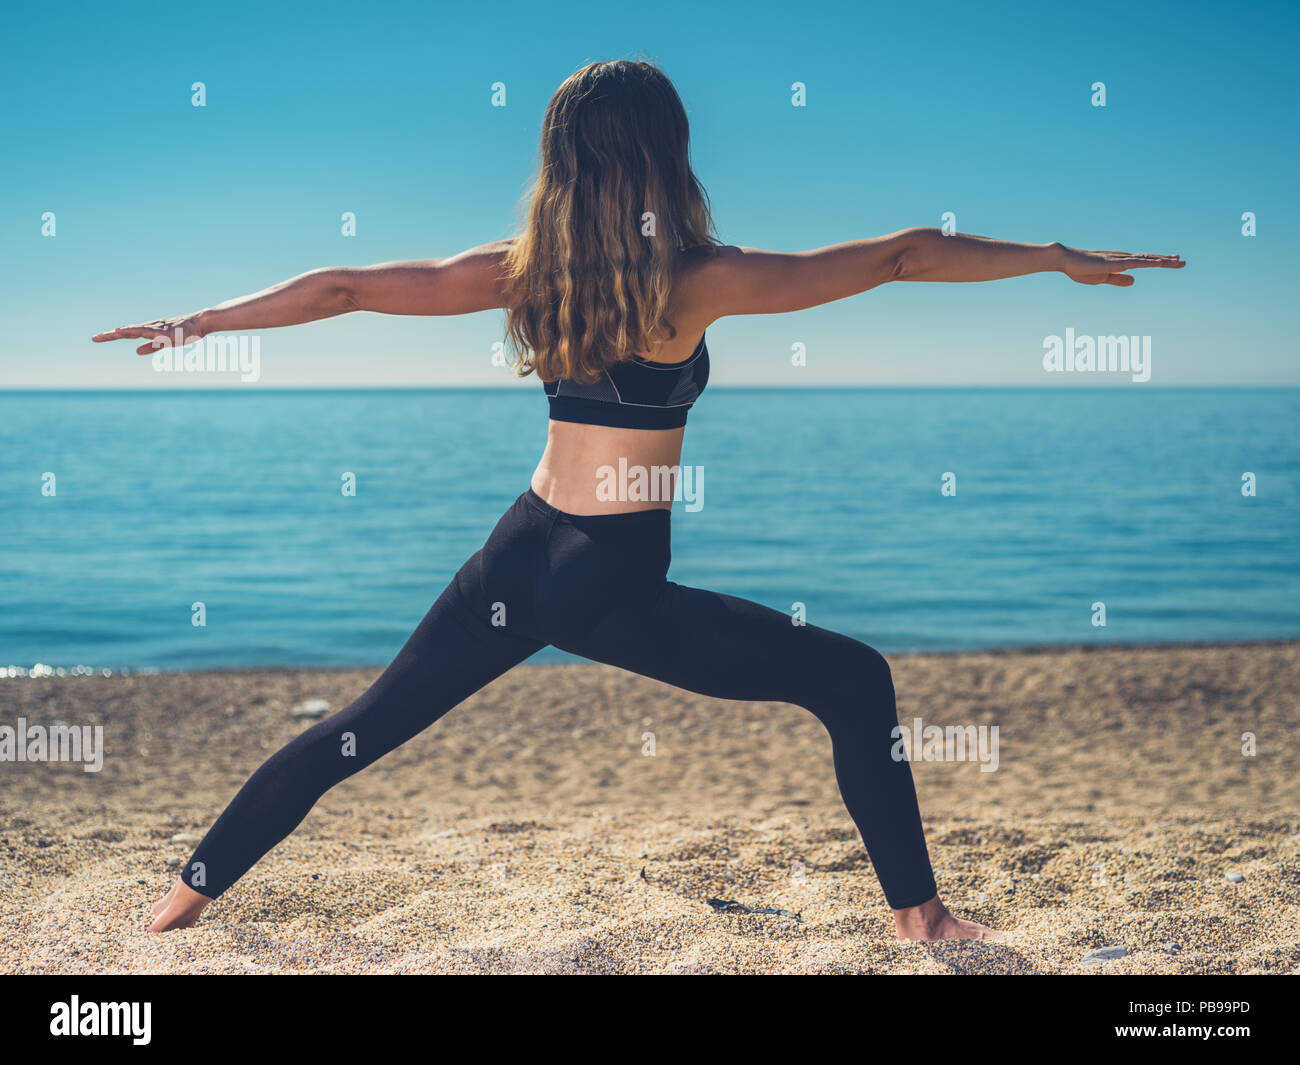 A young woman is in a warrior yoga pose on the beach in summer - Stock Image